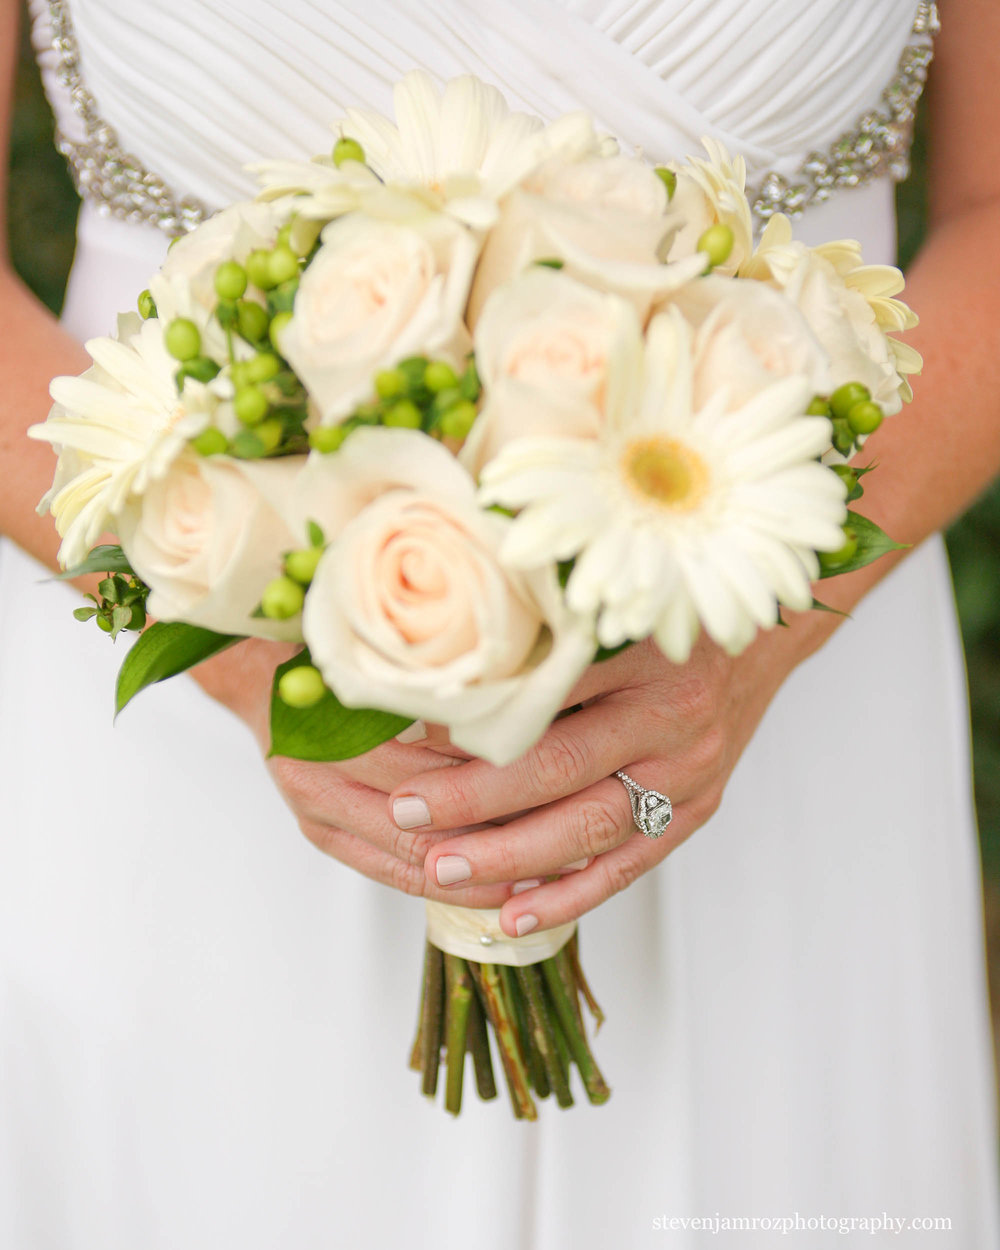 bride-holding-bouquet-wedding-steven-jamroz-photography-0559.jpg